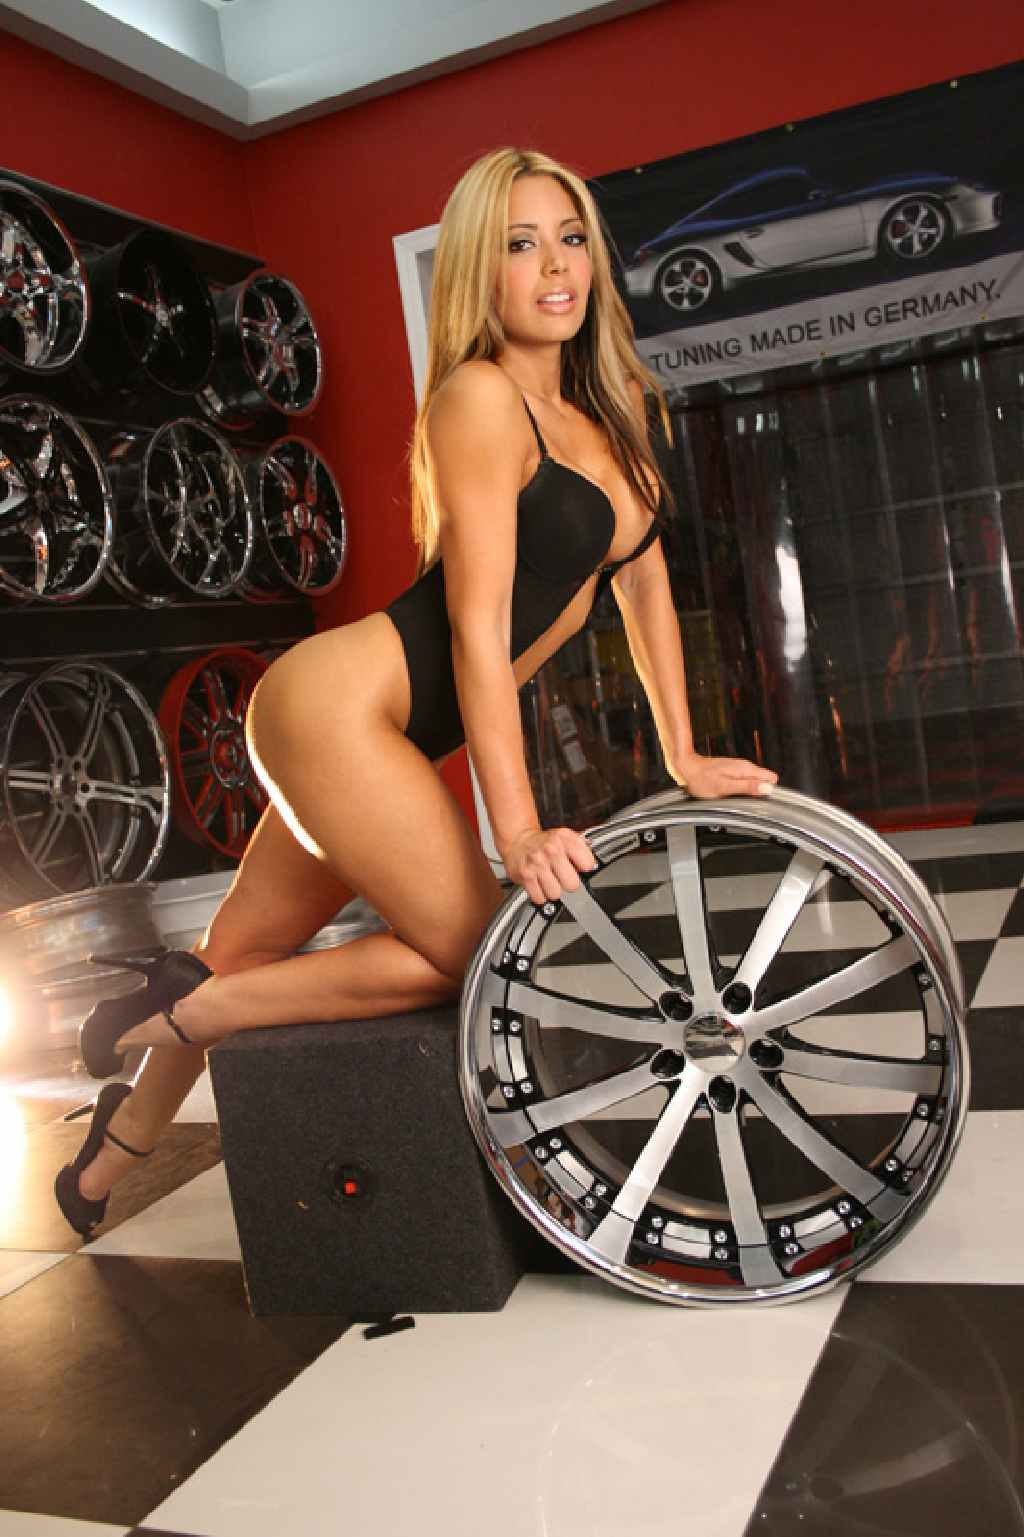 babes, bikini, cars girls, CarsGirls, Chrom, erotisch, featured, Felge, fotoshooting, grid girls, GridGirls, heels, Rad, Savini, sexy, Sexy girls, SexyGirls, Tuner, Tuning, vossen, wheels